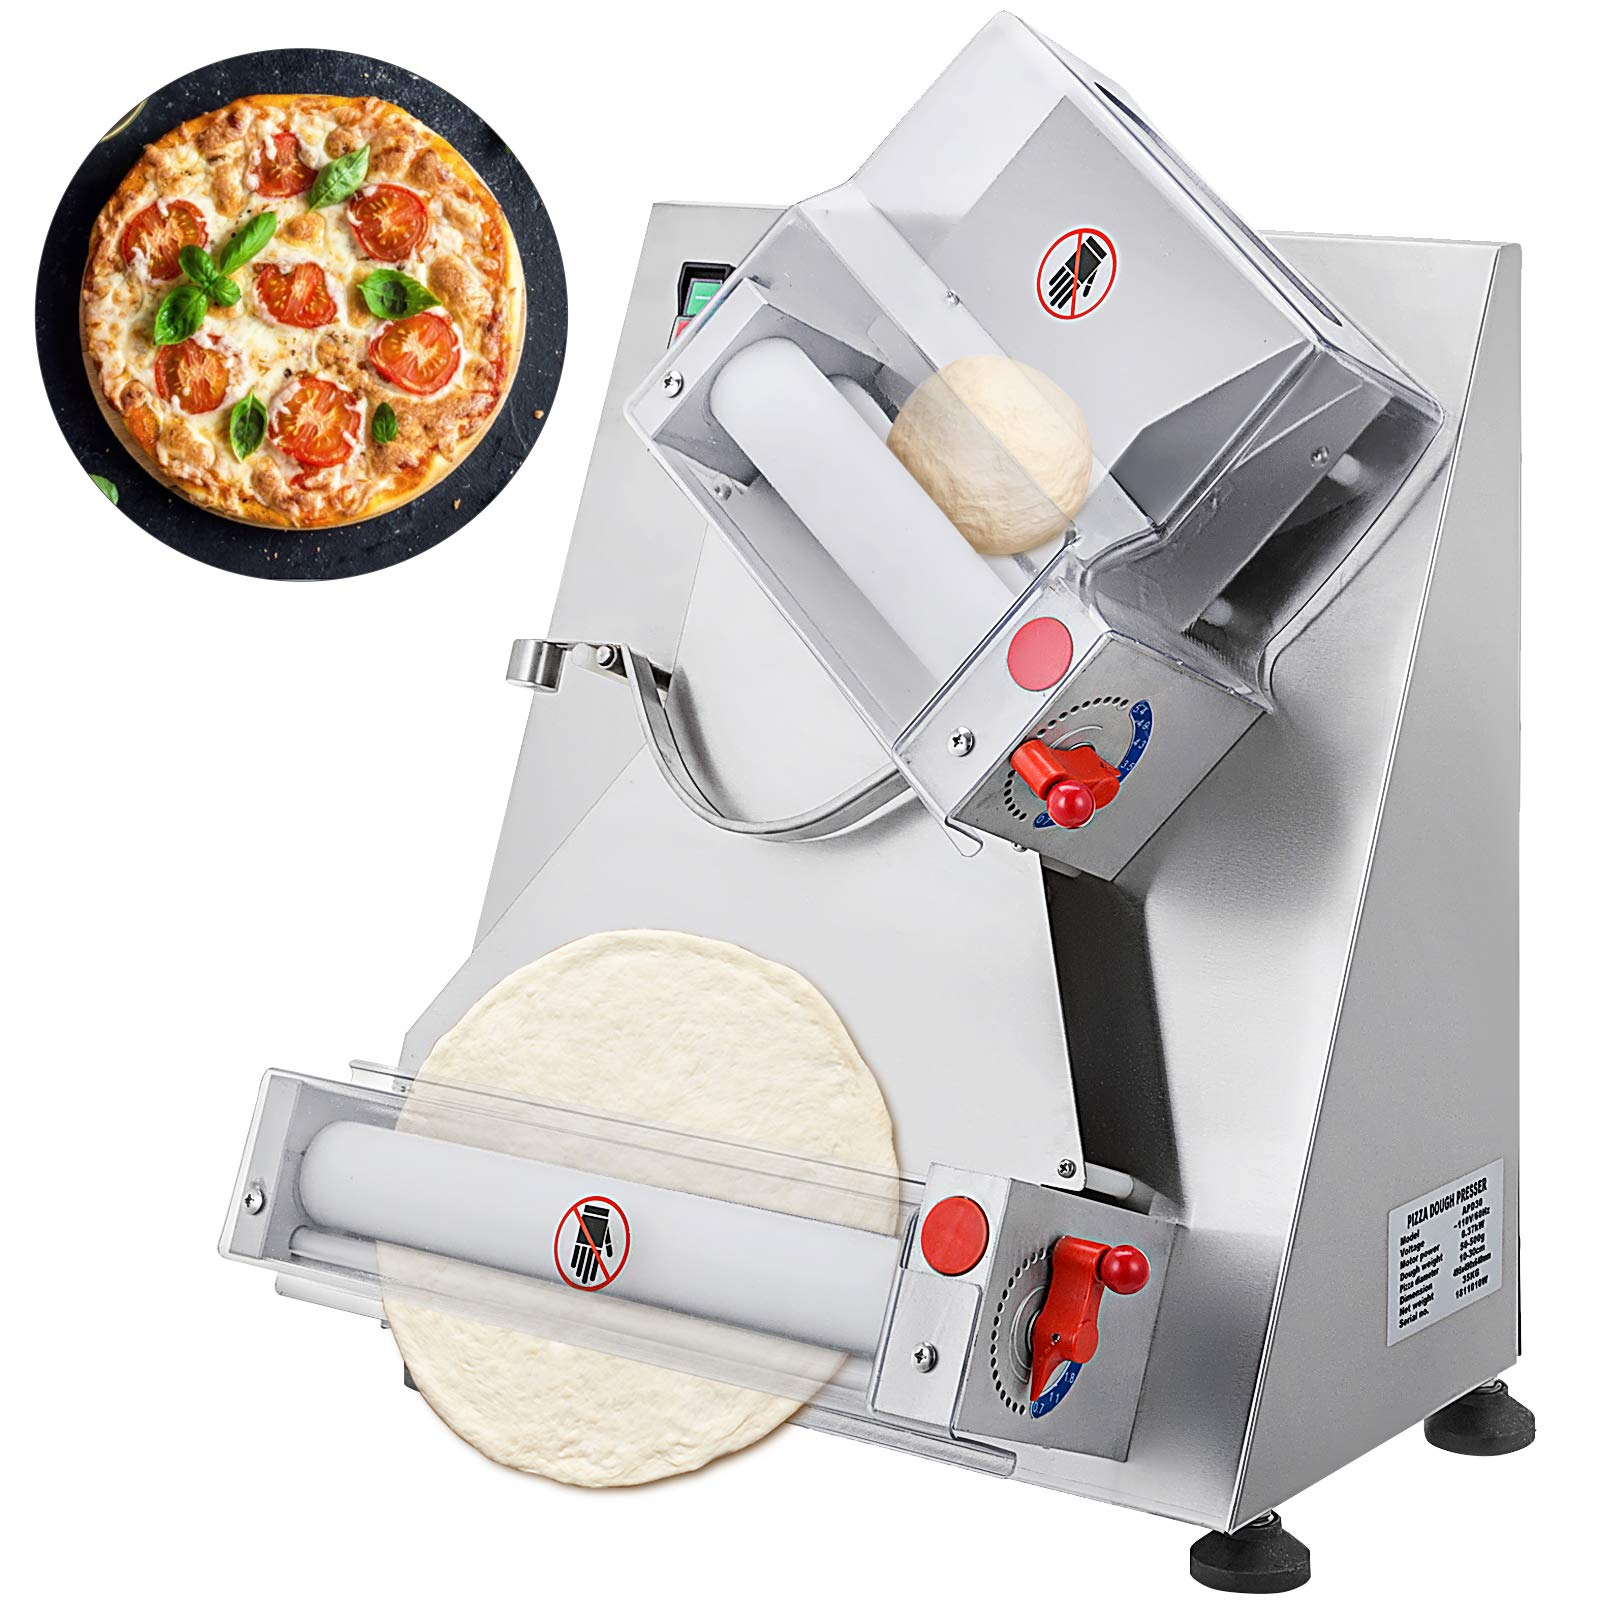 VEVOR Commercial Dough Roller Sheeter 370W Automatically Suitable for Noodle Pizza Bread and Pasta Maker Equipment, 11.8 inch, Silver